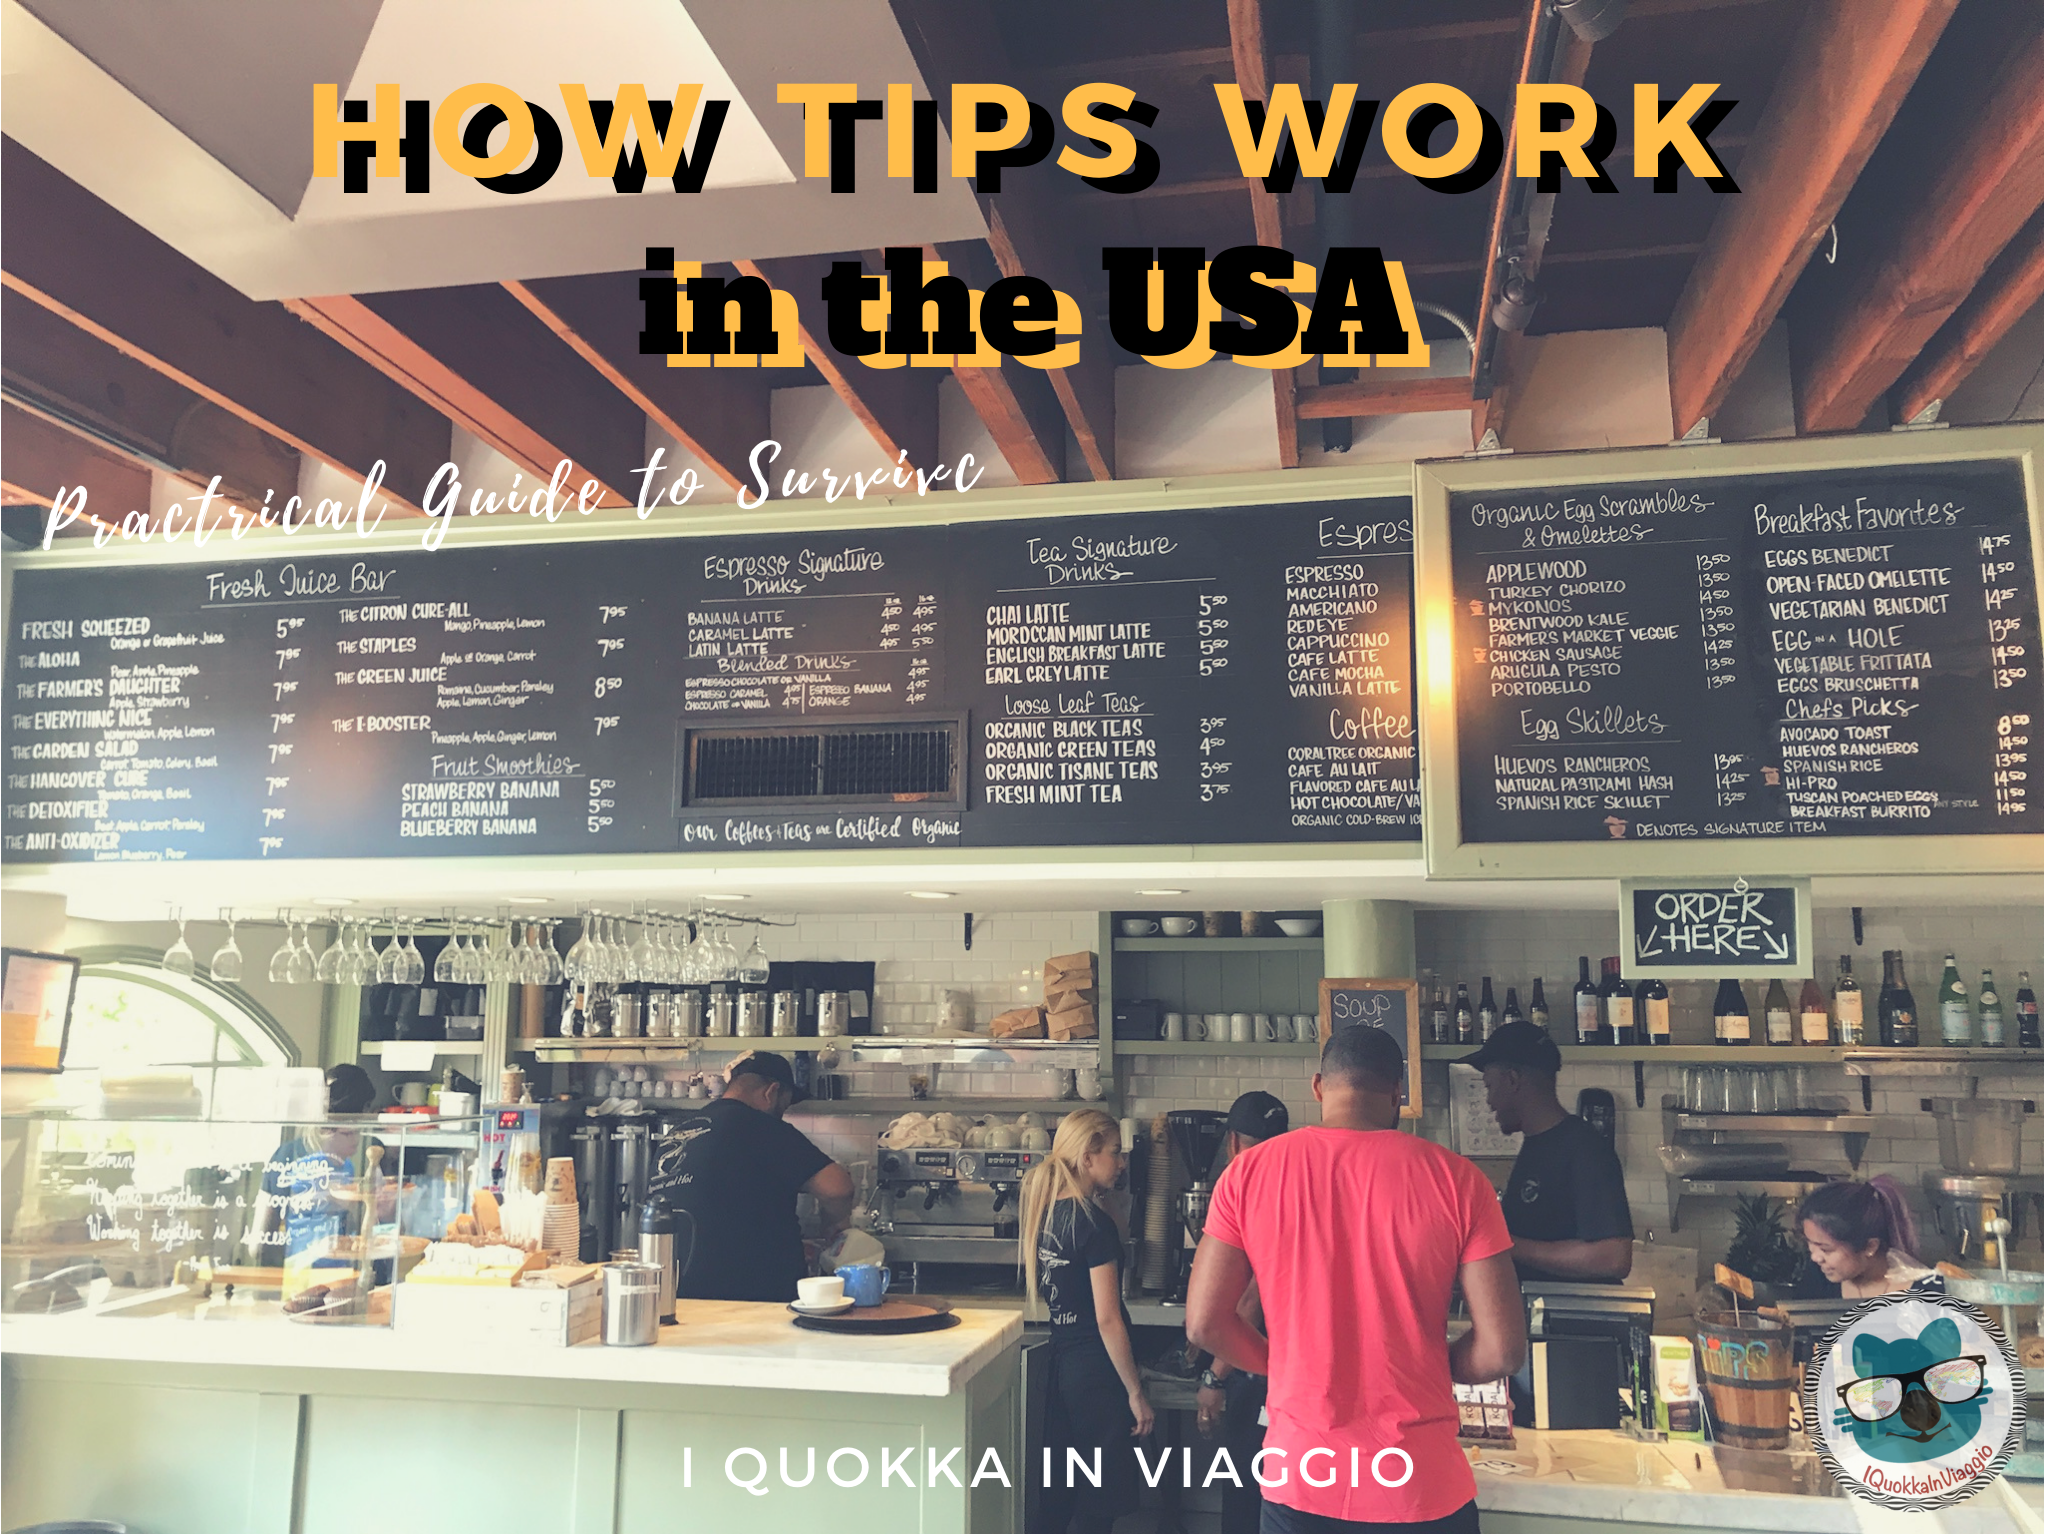 How tips work in the USA